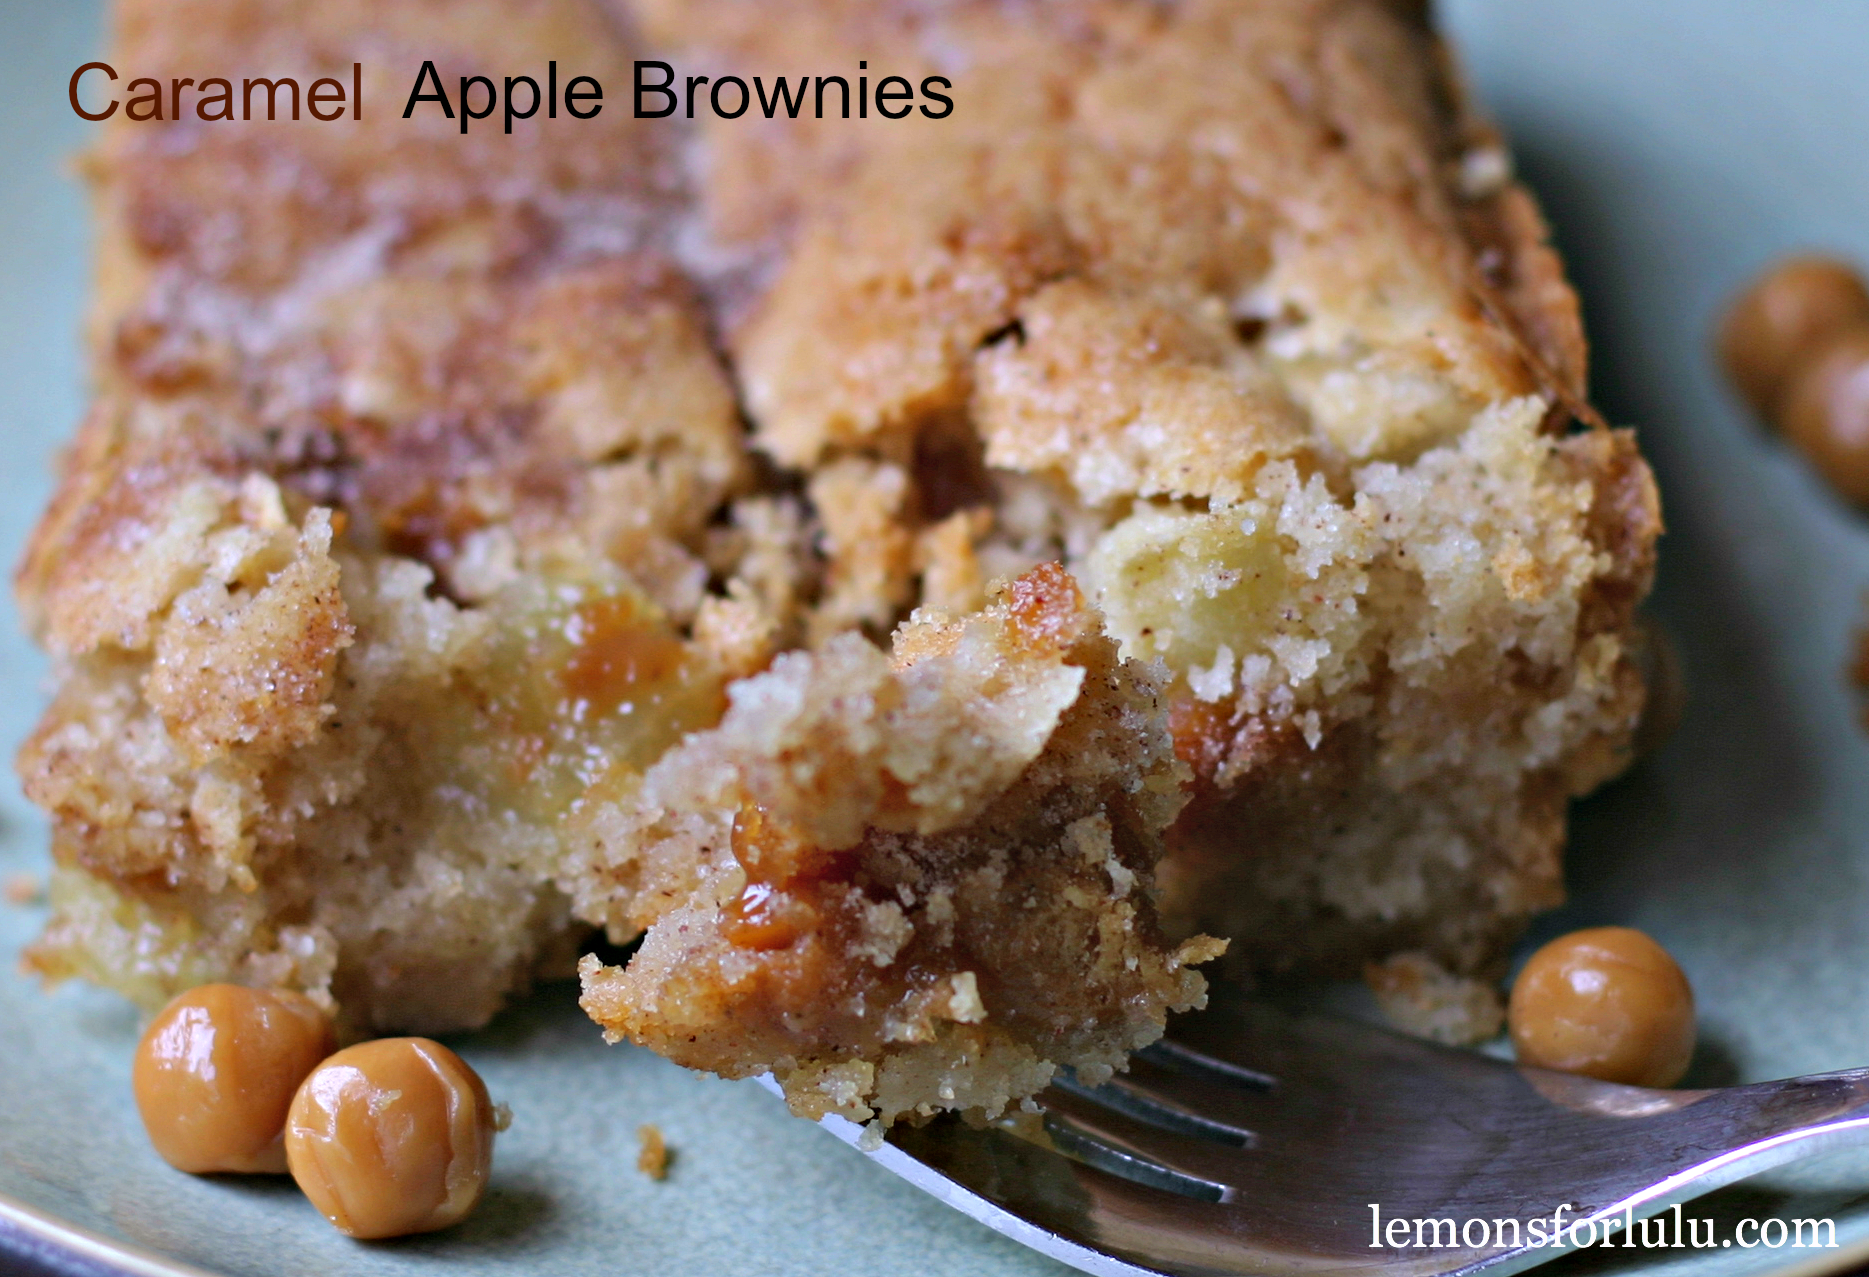 Caramel-Apple-Brownies.png (1869×1277)